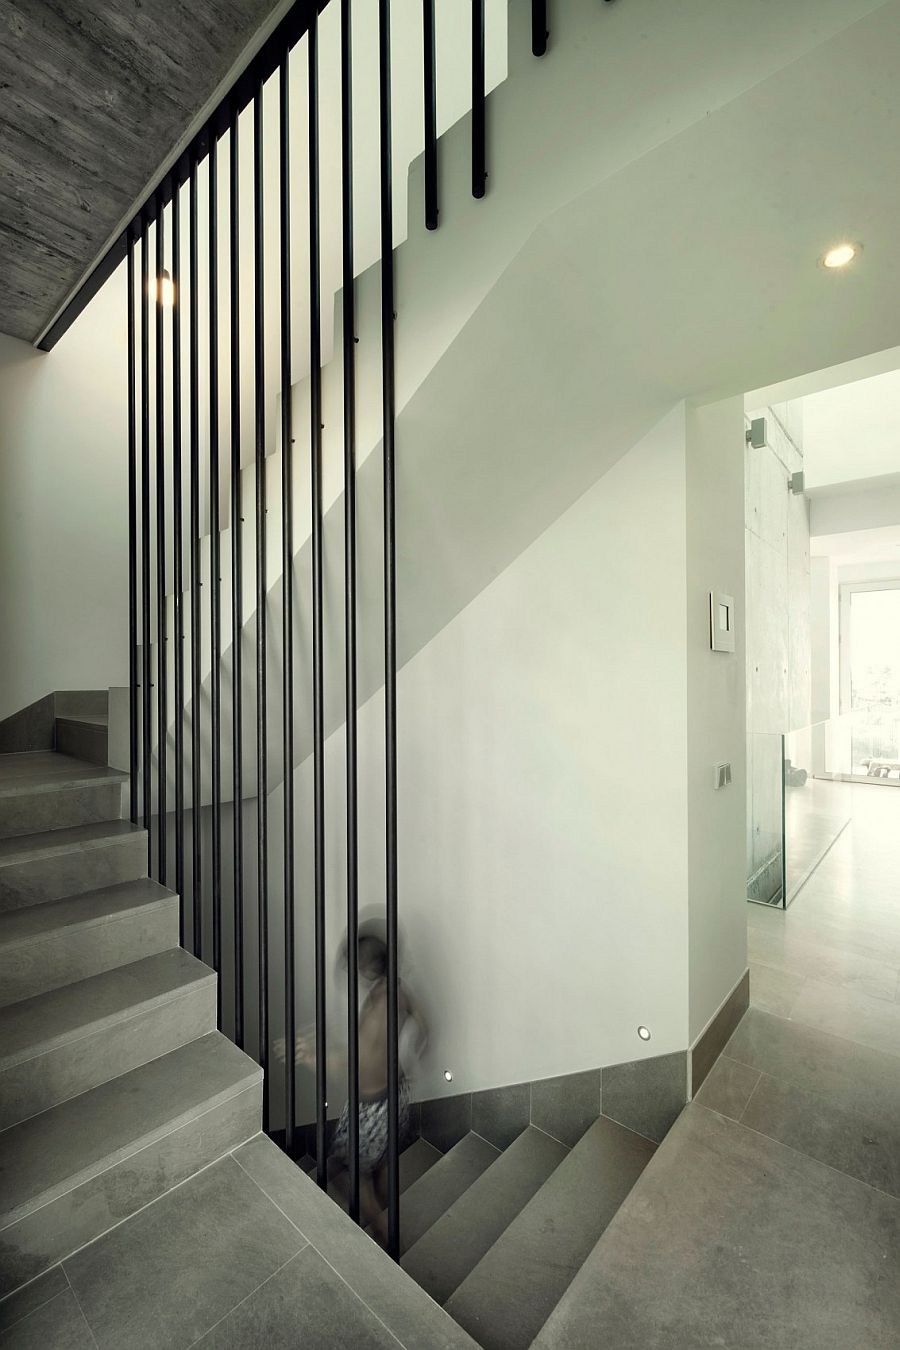 Simple staircase connects the various levels of the home in Algeciras, Spain